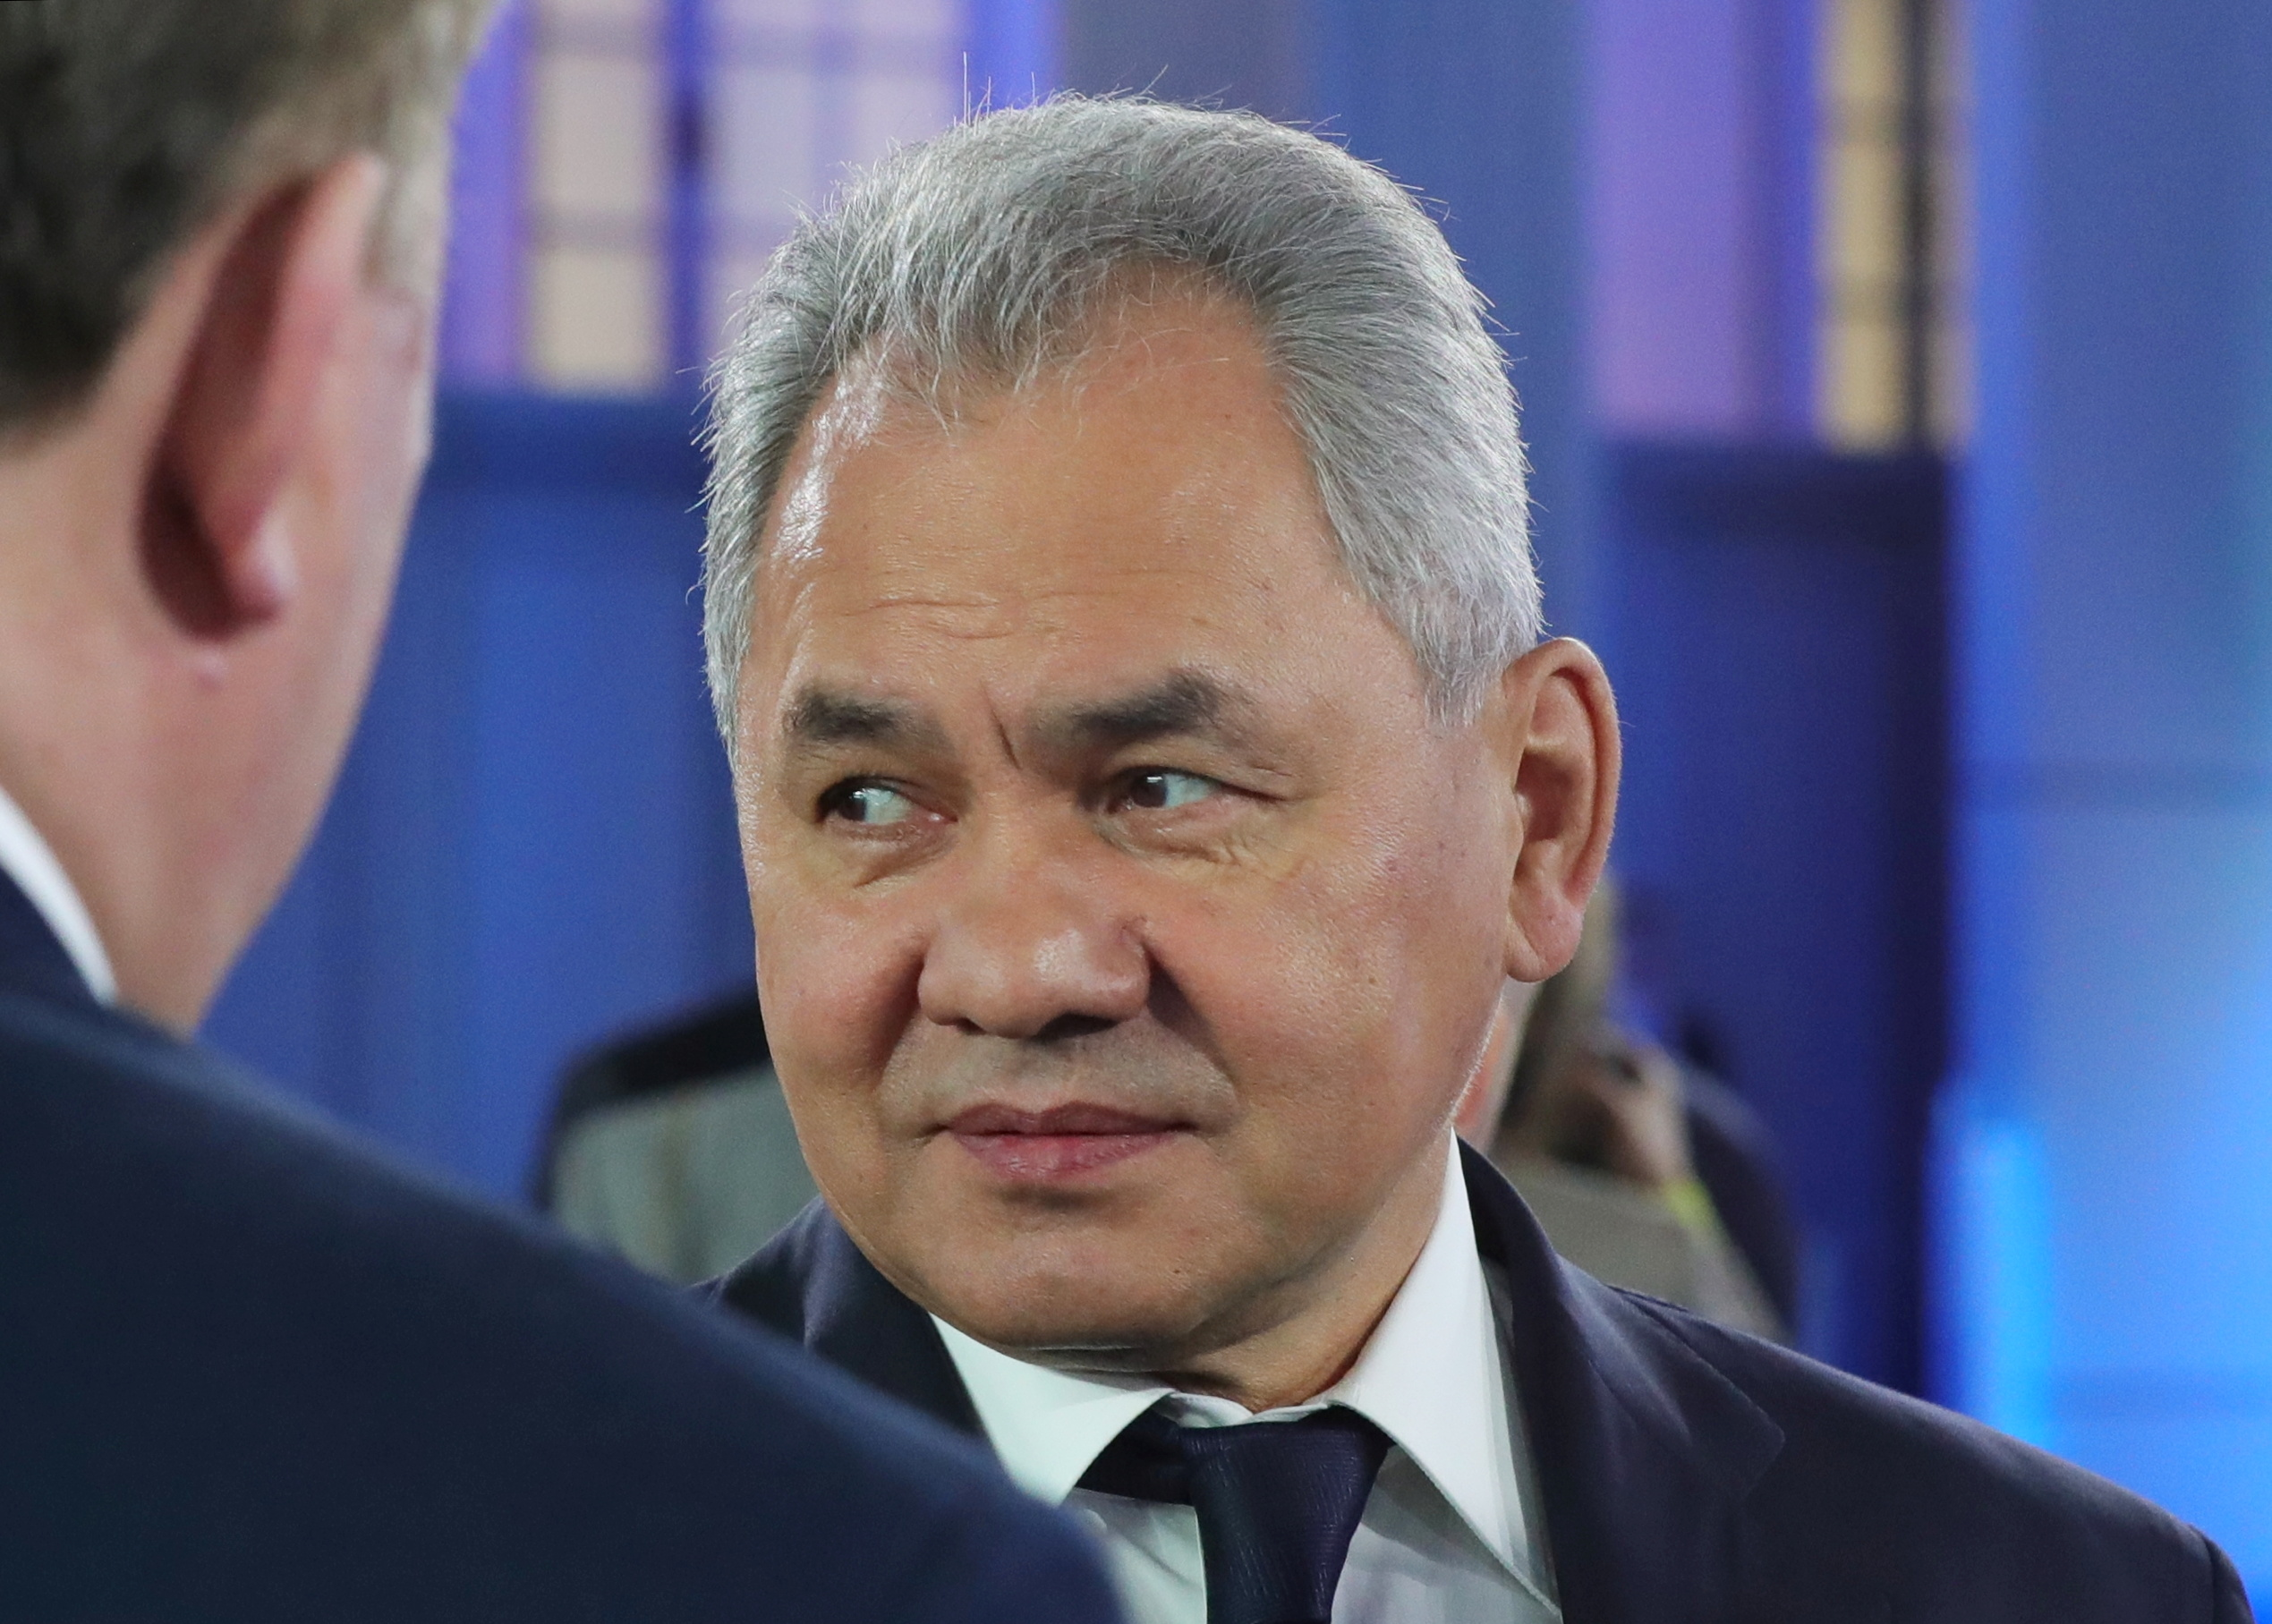 Russian Defence Minister Sergei Shoigu attends Russian President Vladimir Putin's annual address to the Federal Assembly in Moscow, Russia April 21, 2021. Sputnik/Mikhail Klimentyev/Kremlin via REUTERS